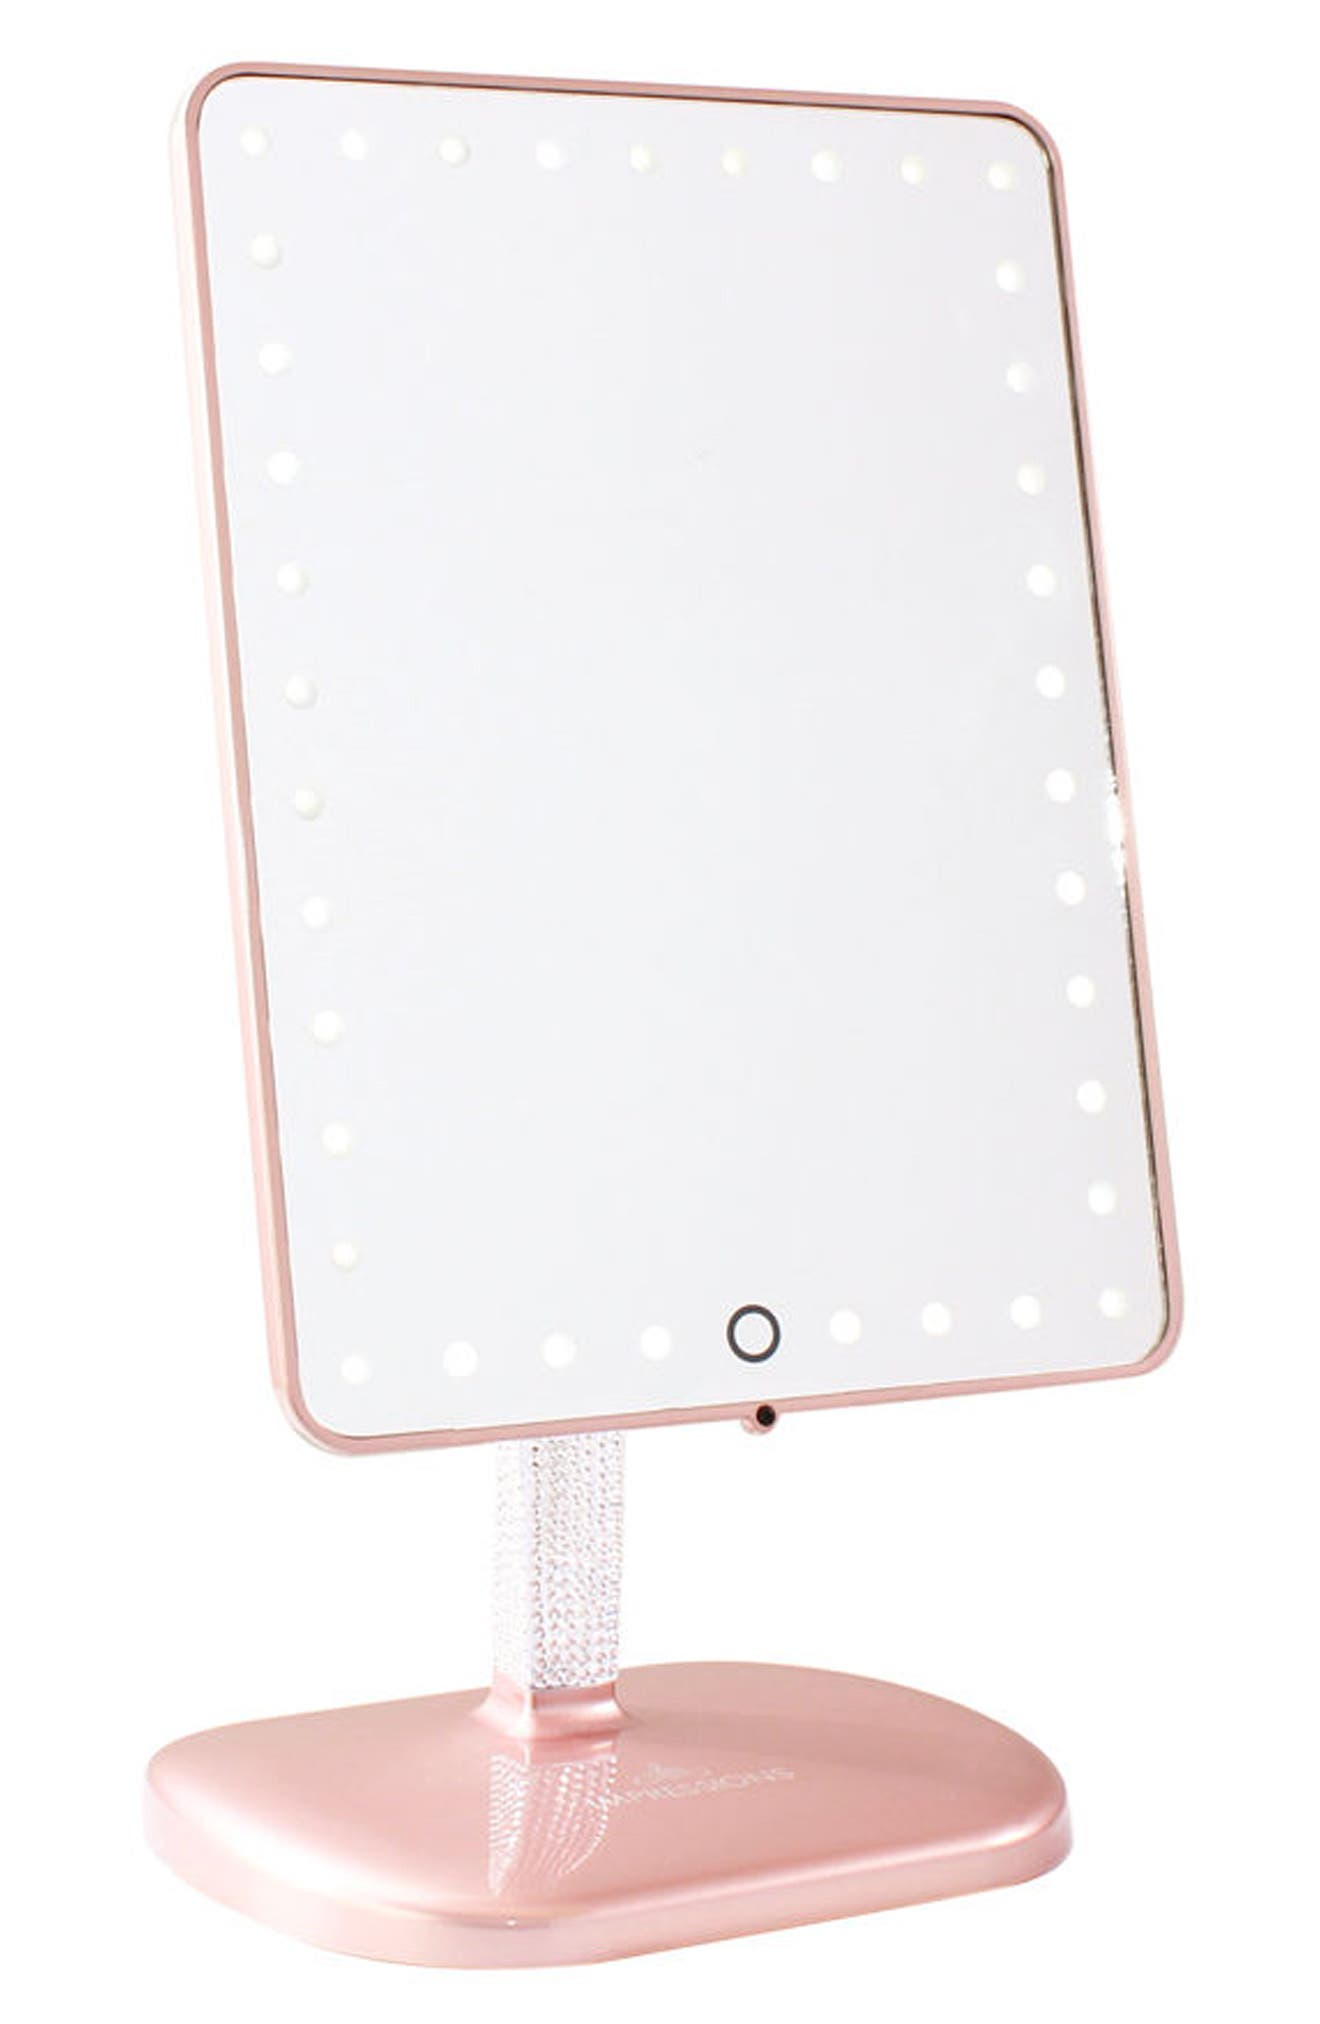 Bling Touch Pro LED Makeup Mirror with Bluetooth<sup>®</sup> Audio & Speakerphone,                             Main thumbnail 1, color,                             ROSE GOLD BLING EDITION